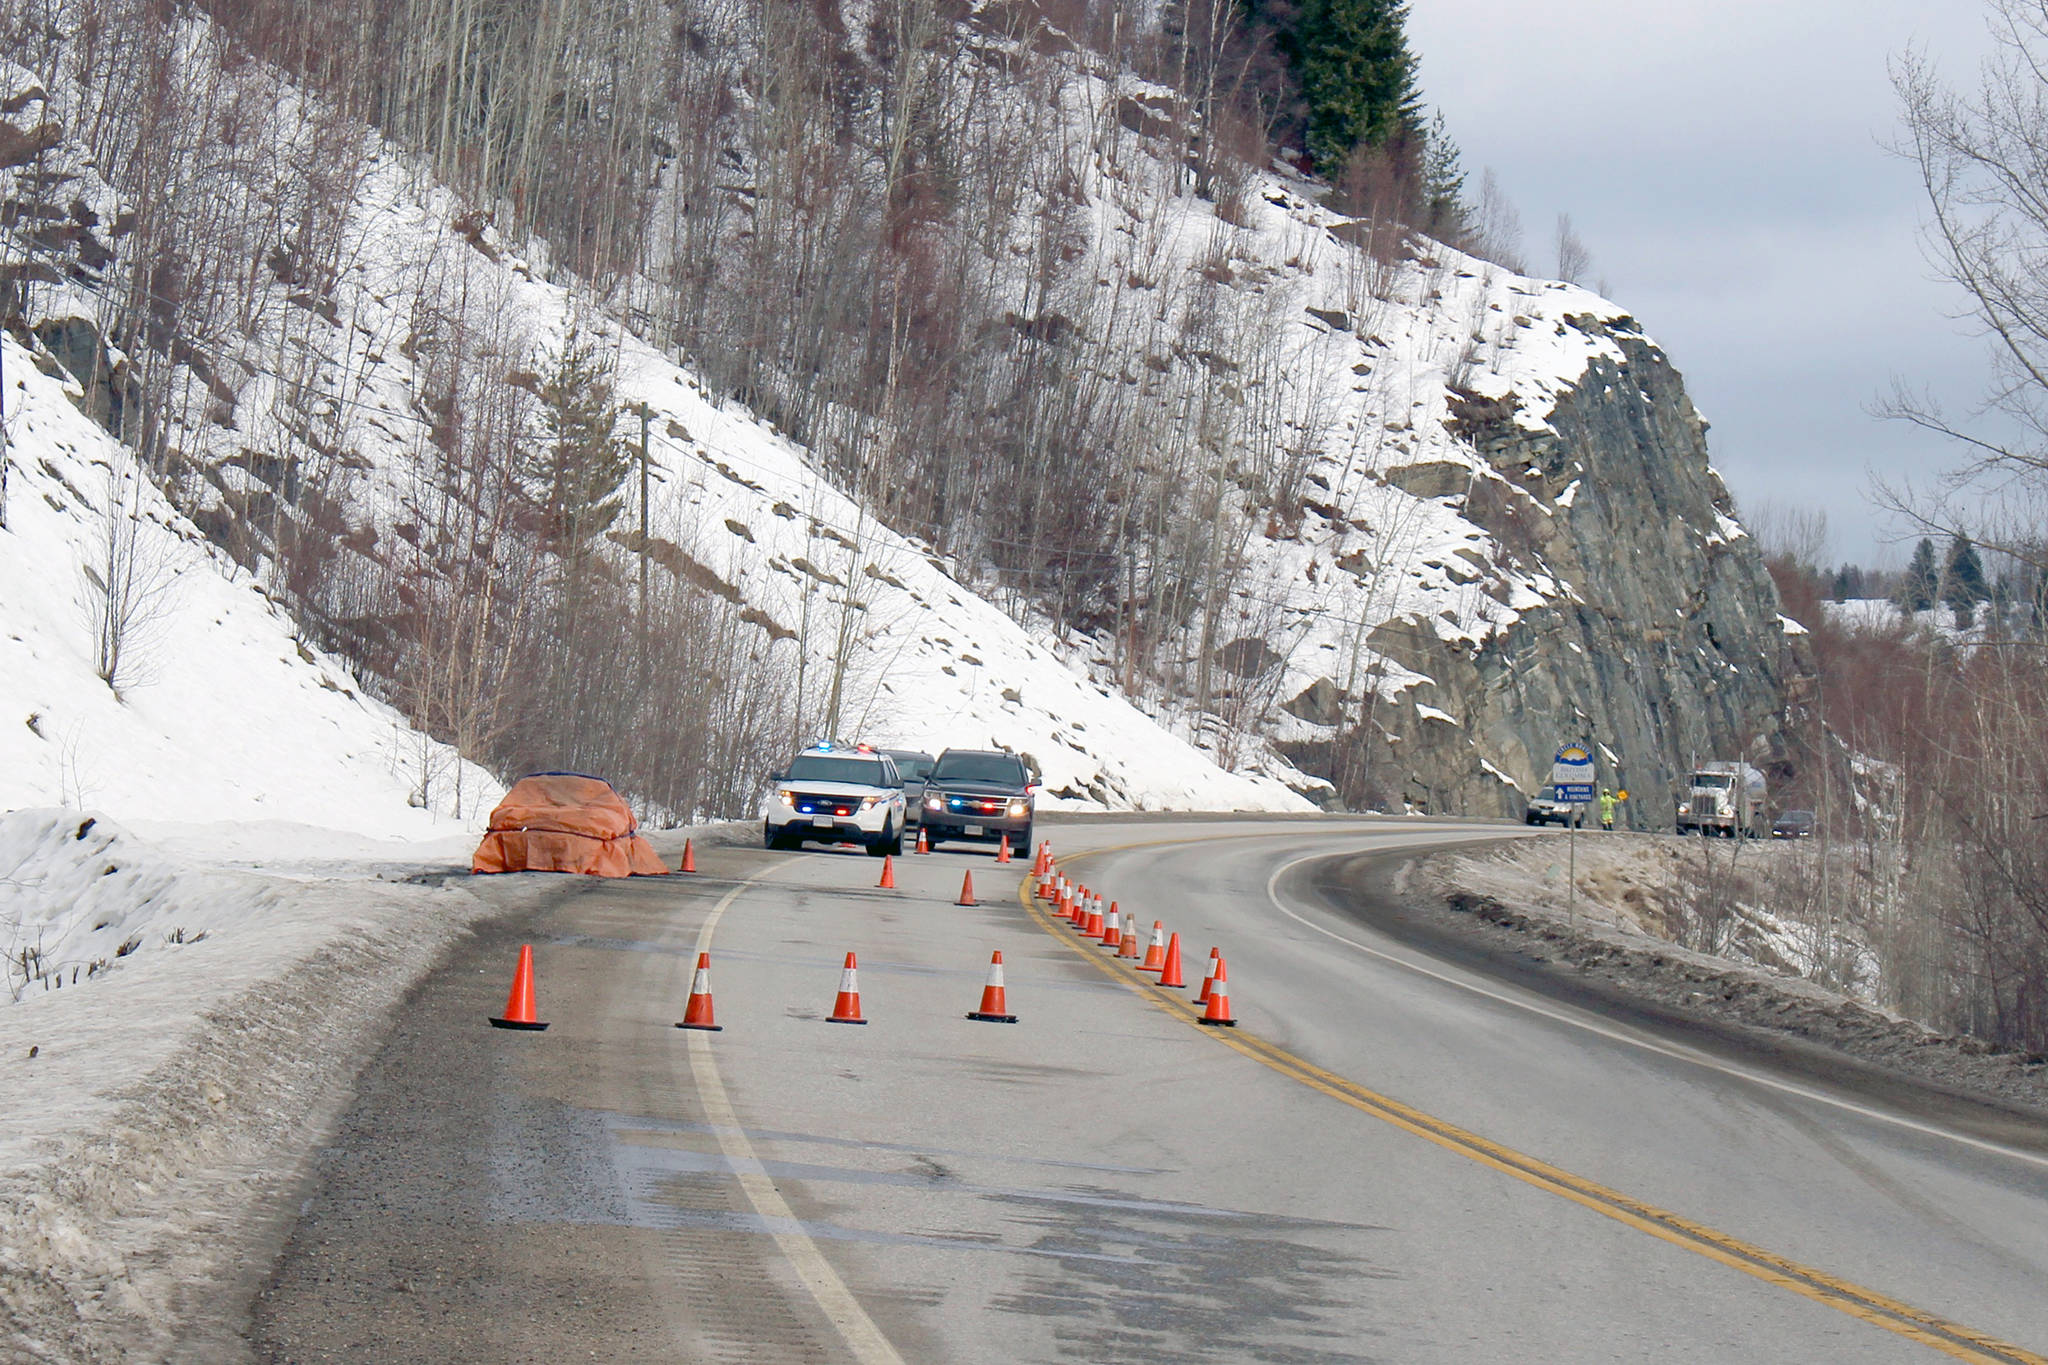 The body found in the 1999 Honda Civic found burning on the side of Hwy 22 on Jan 14 has been identified. (Chelsea Novak/Castlegar News)